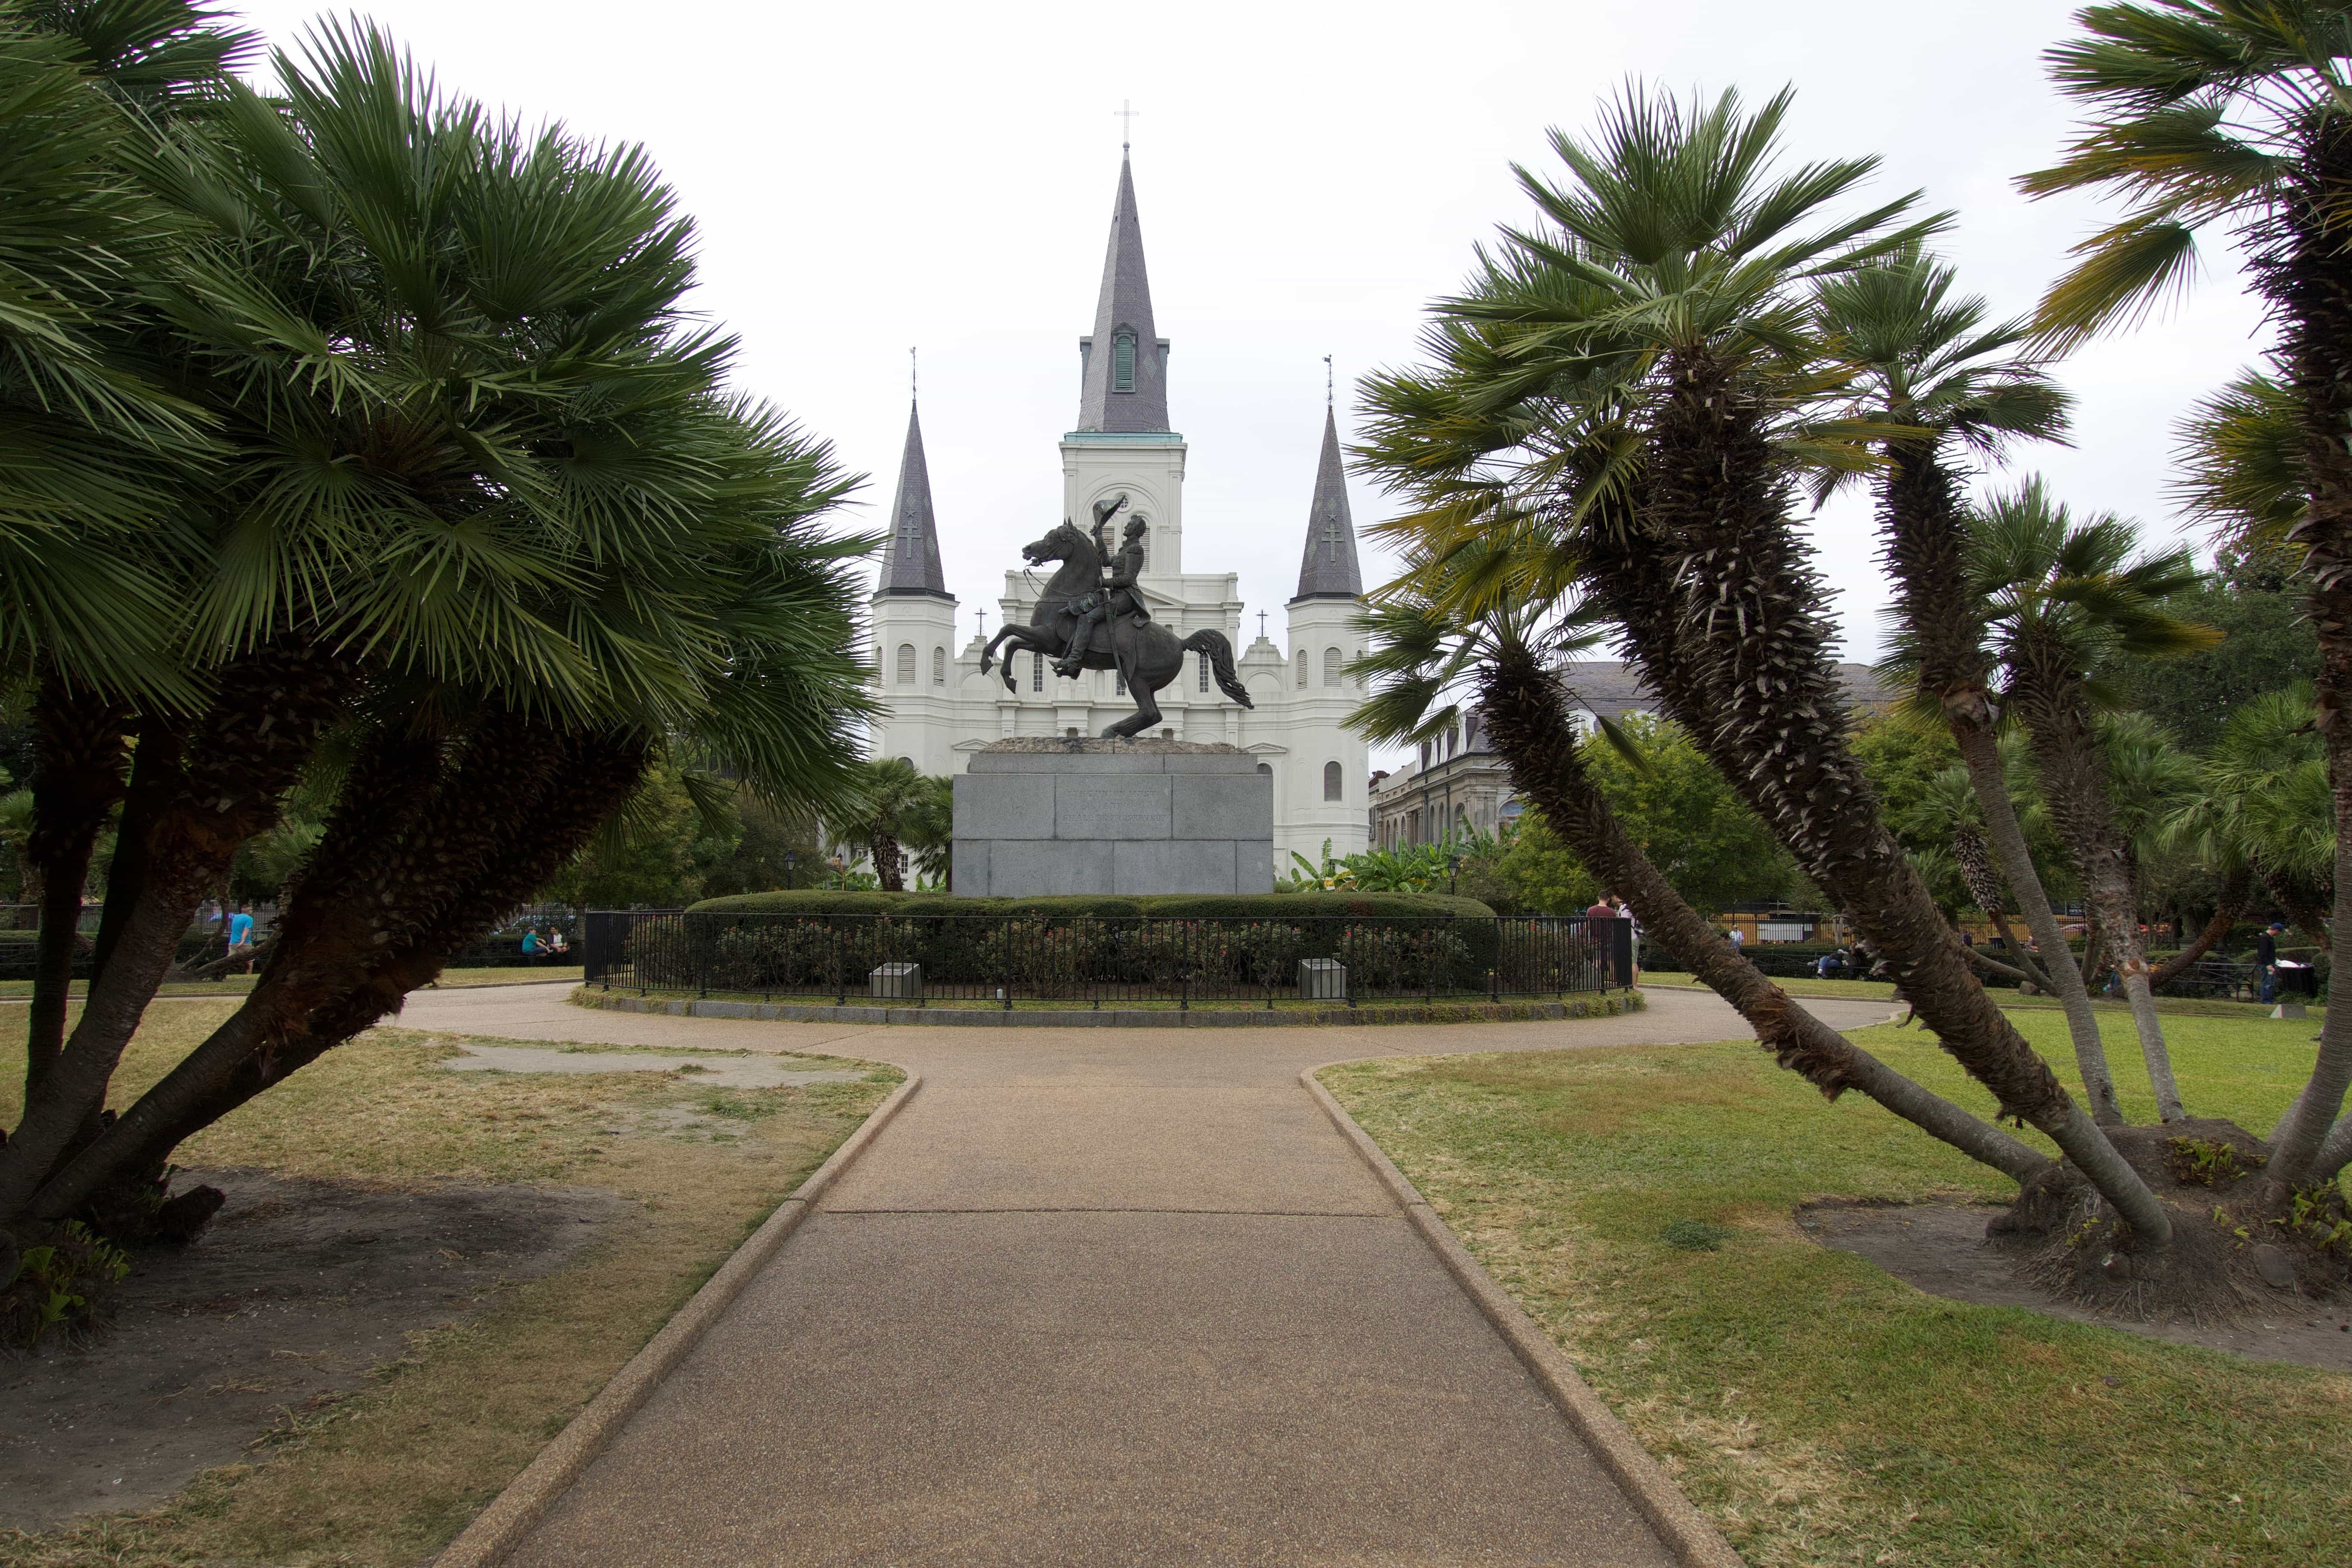 """With it's Spanish and French roots, flavorful food, and vibrant life music scene, New Orleans is a city not of """"things to do,"""" but to experience in full. Read more at thefivefoottraveler.com"""